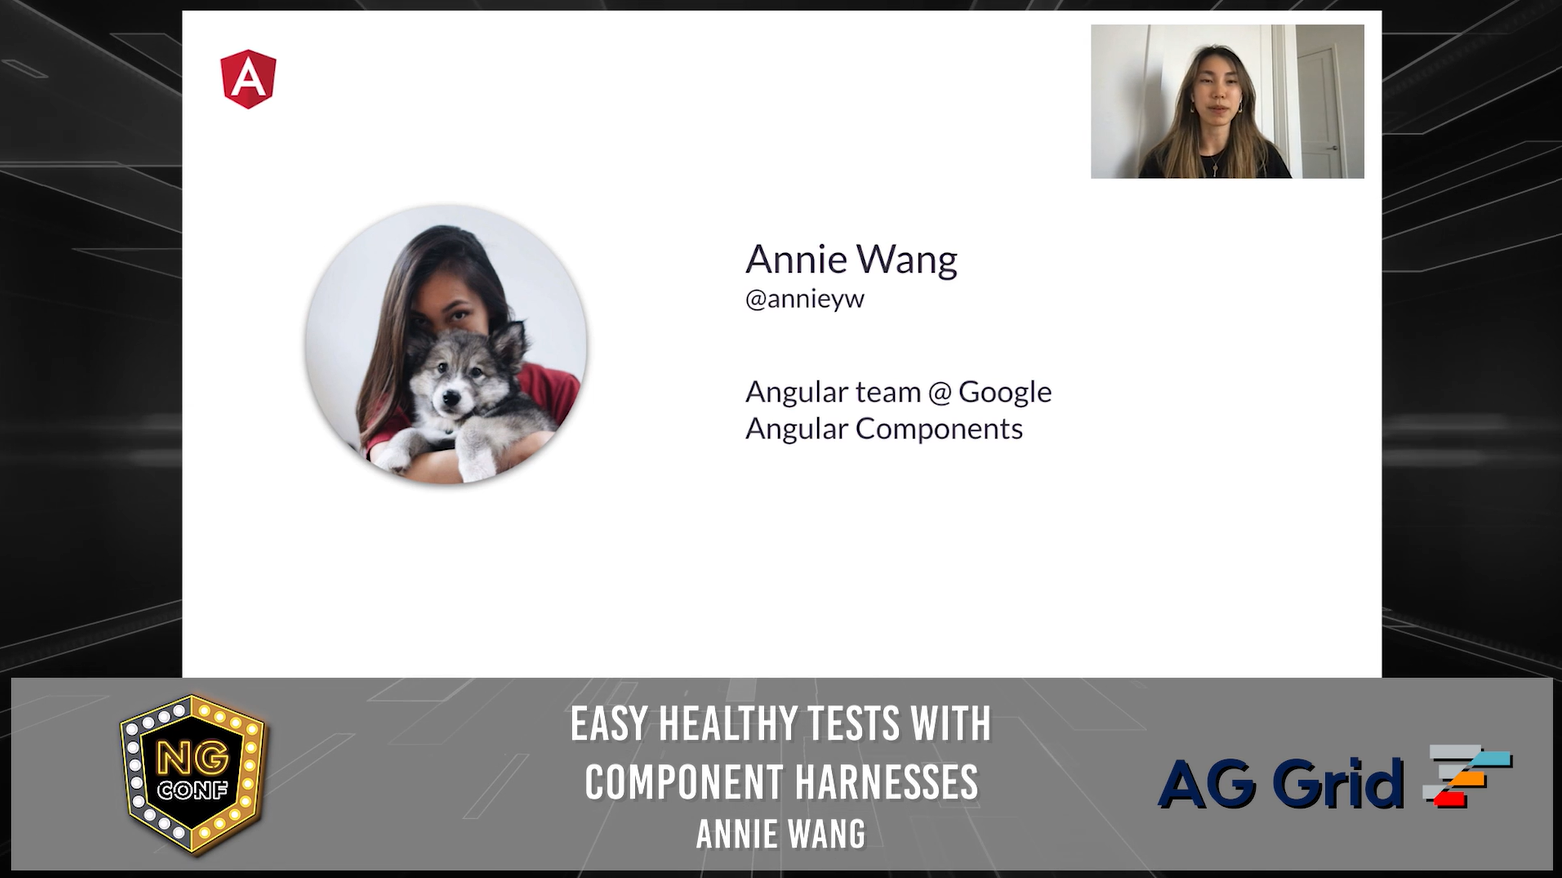 Easy healthy tests with component harnesses